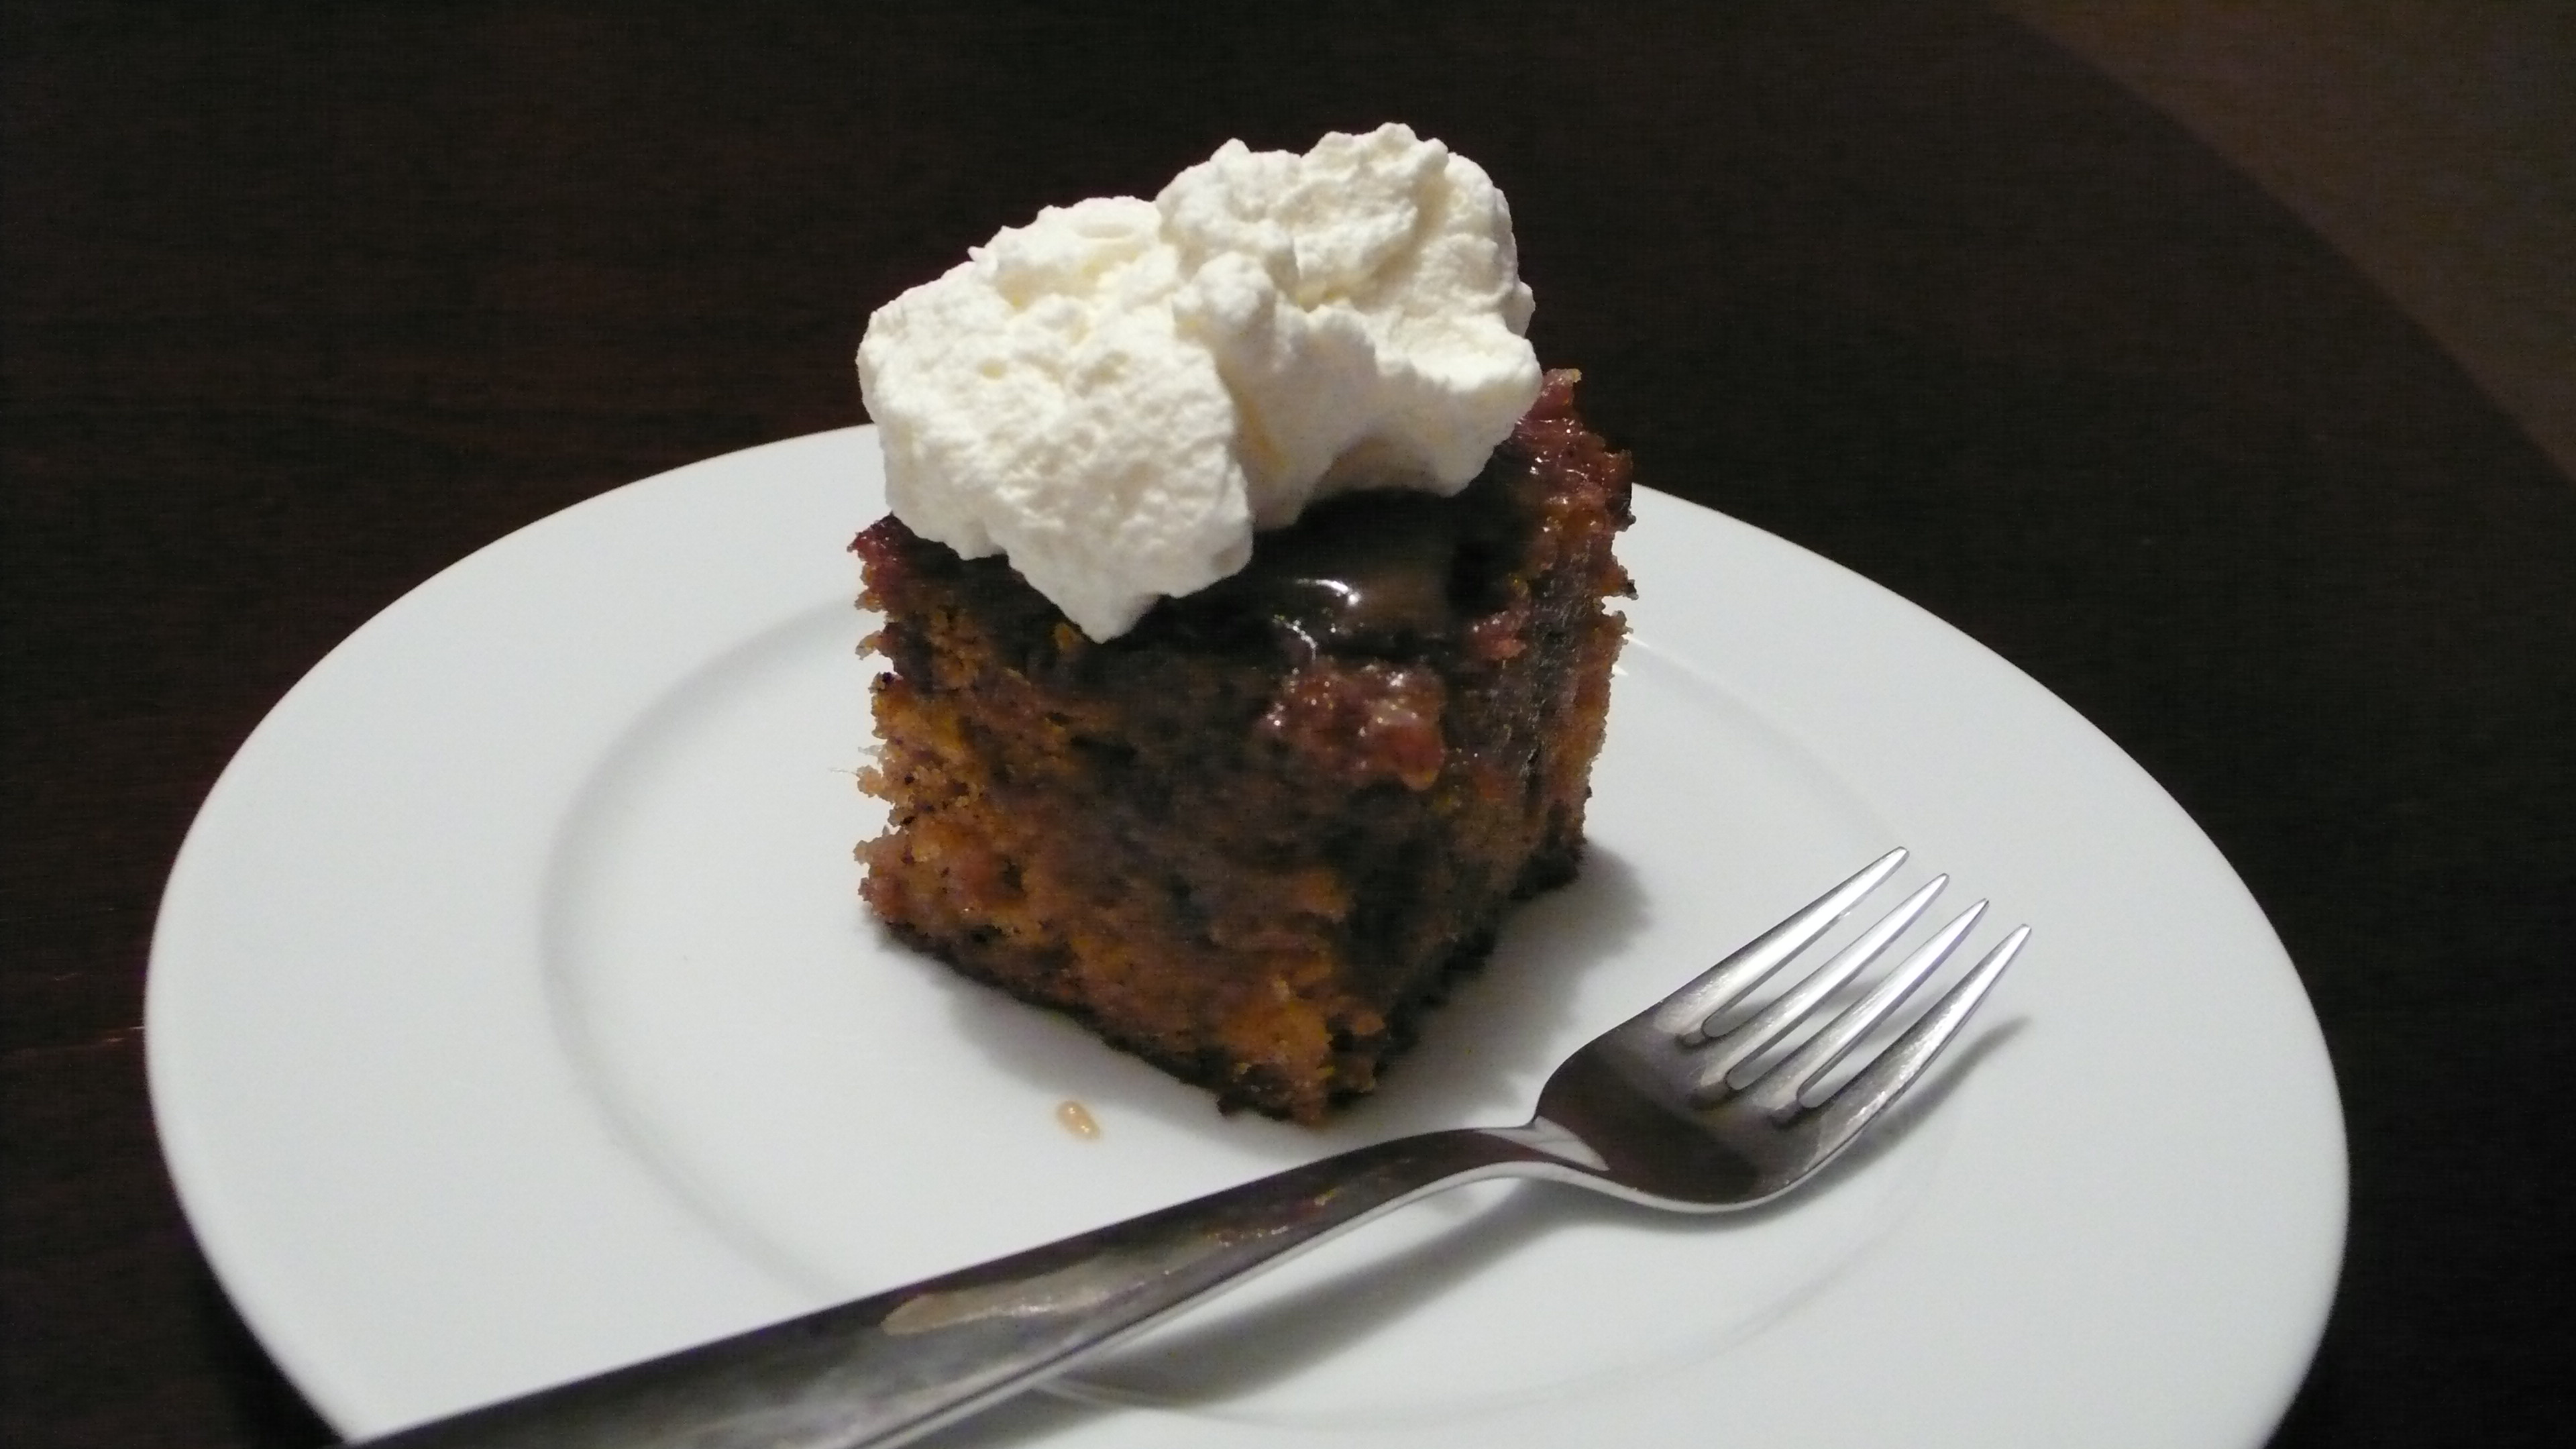 The Chopping Block's Sticky Toffee Pudding